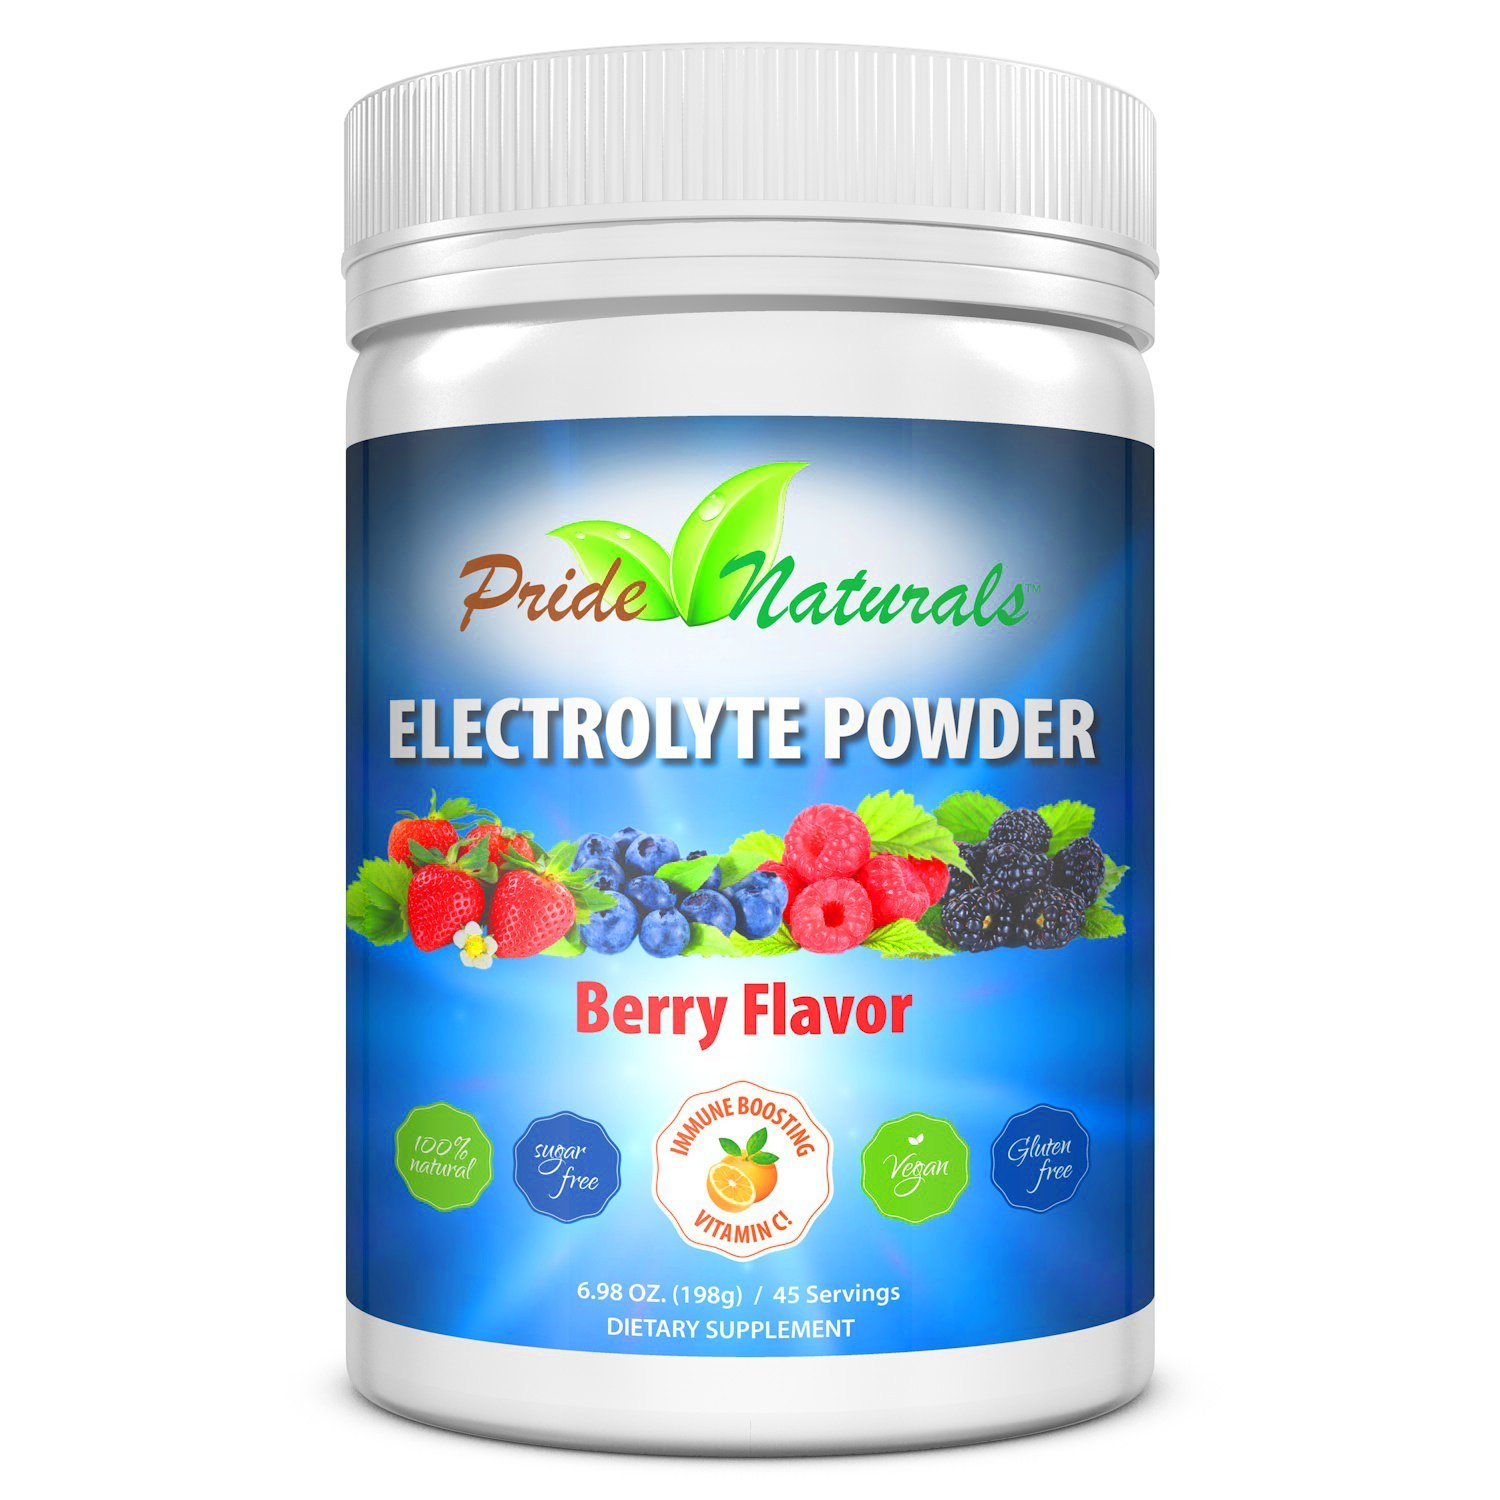 Electrolyte Powder - Refreshing Pre & Post Workout Recovery Electrolytes | All Natural, Sugar Free, Gluten Free & Vegan | Pure Keto & Paleo Hydration Beverage Mix | Immune Boosting Vitamins & Minerals by Pride Naturals Inc